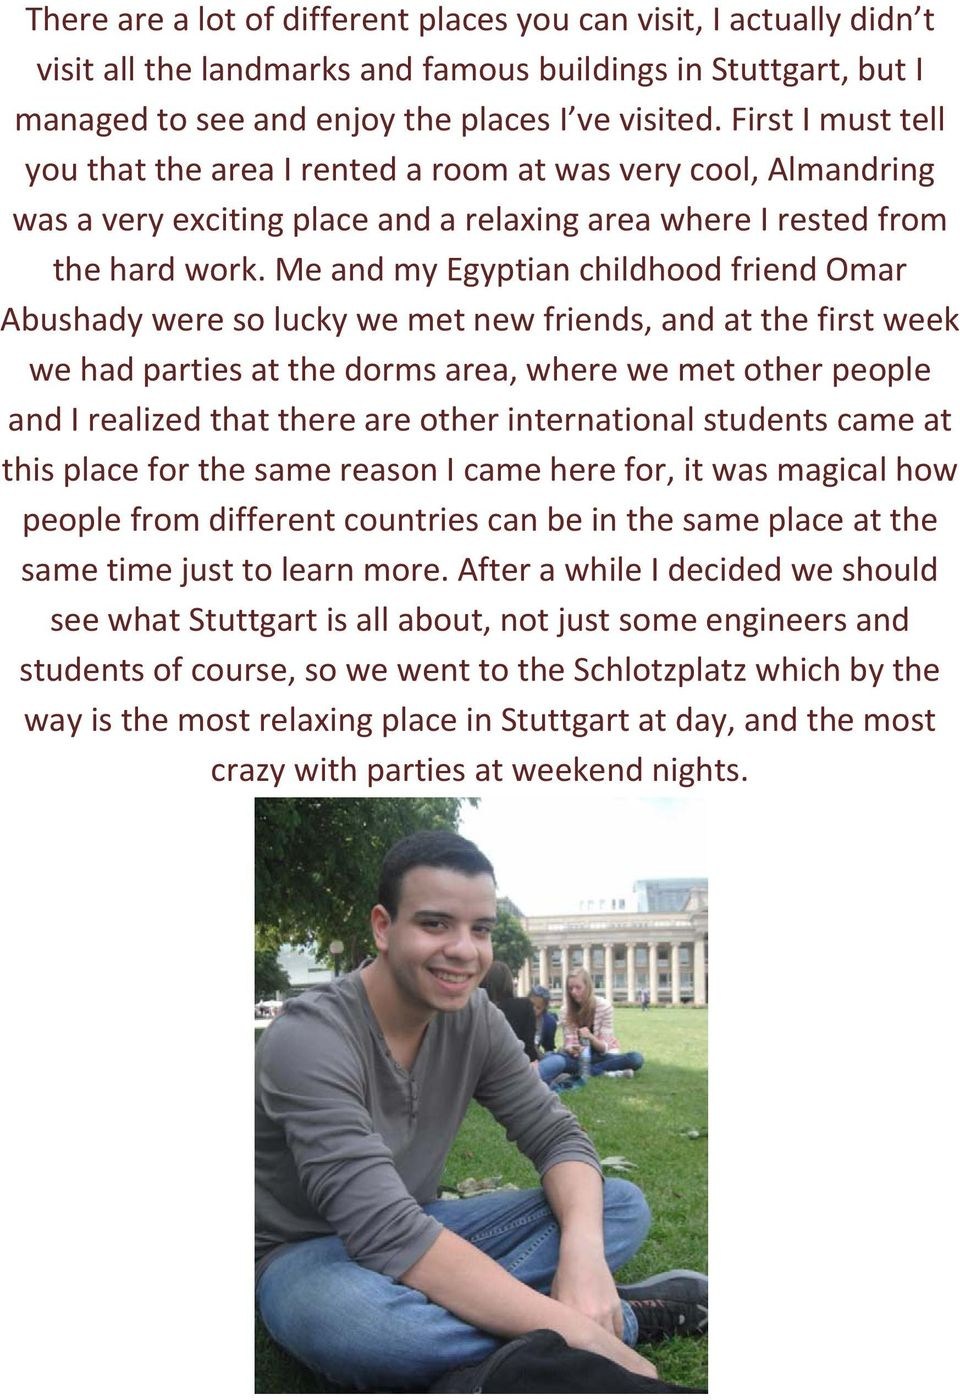 Me and my Egyptian childhood friend Omar Abushady were so lucky we met new friends, and at the first week we had parties at the dorms area, where we met other people and I realized that there are